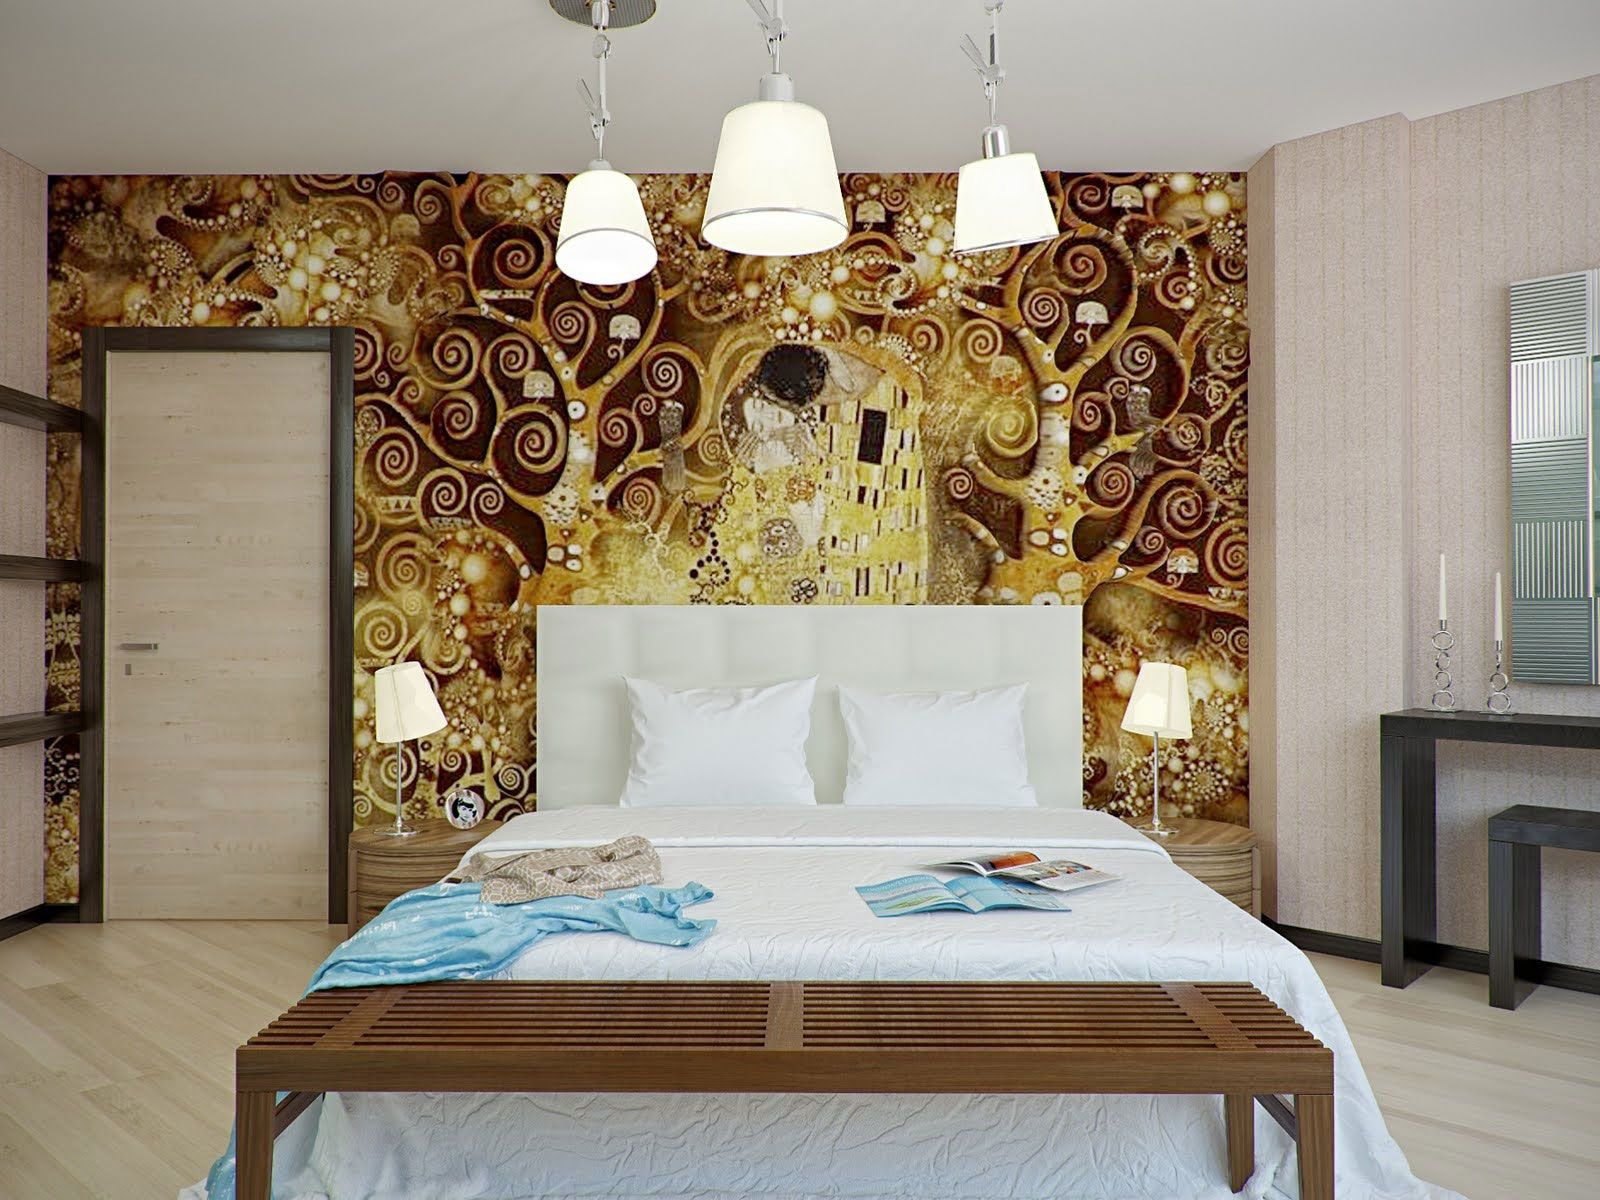 Bold Artistic Wall Decorations For Bedroom: Artistic Gold Brown White Wall Decor  Bedroom Design Part 95